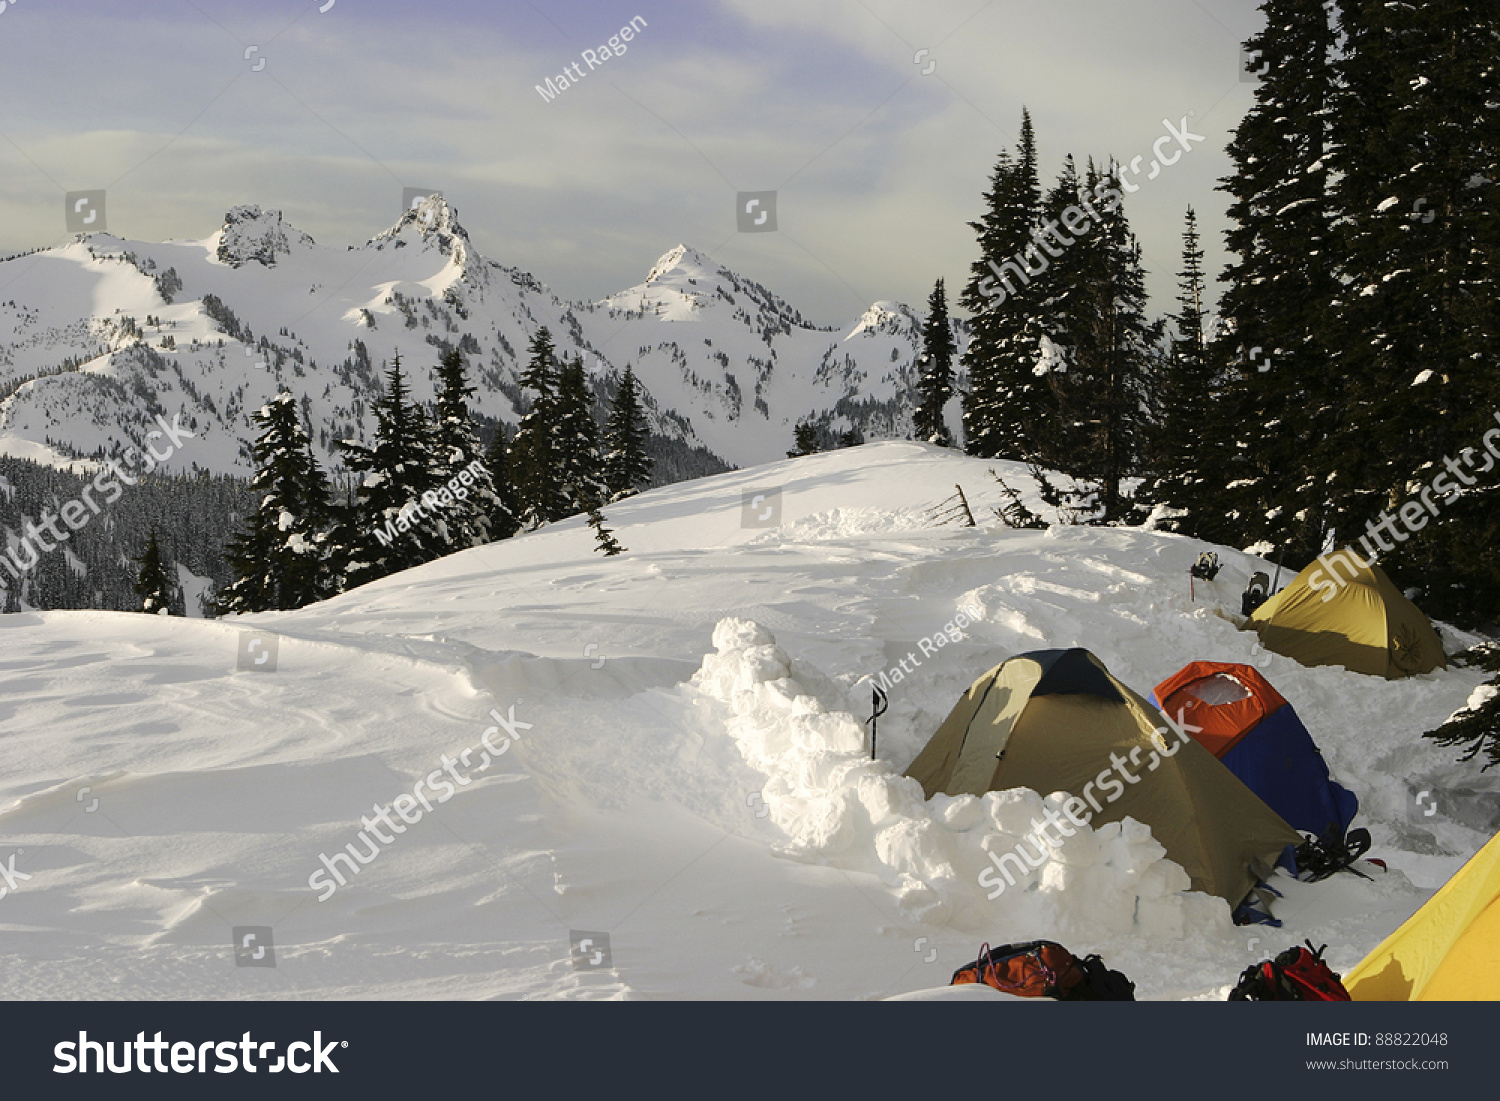 & Group Tents High On Side Mt Stock Photo 88822048 - Shutterstock